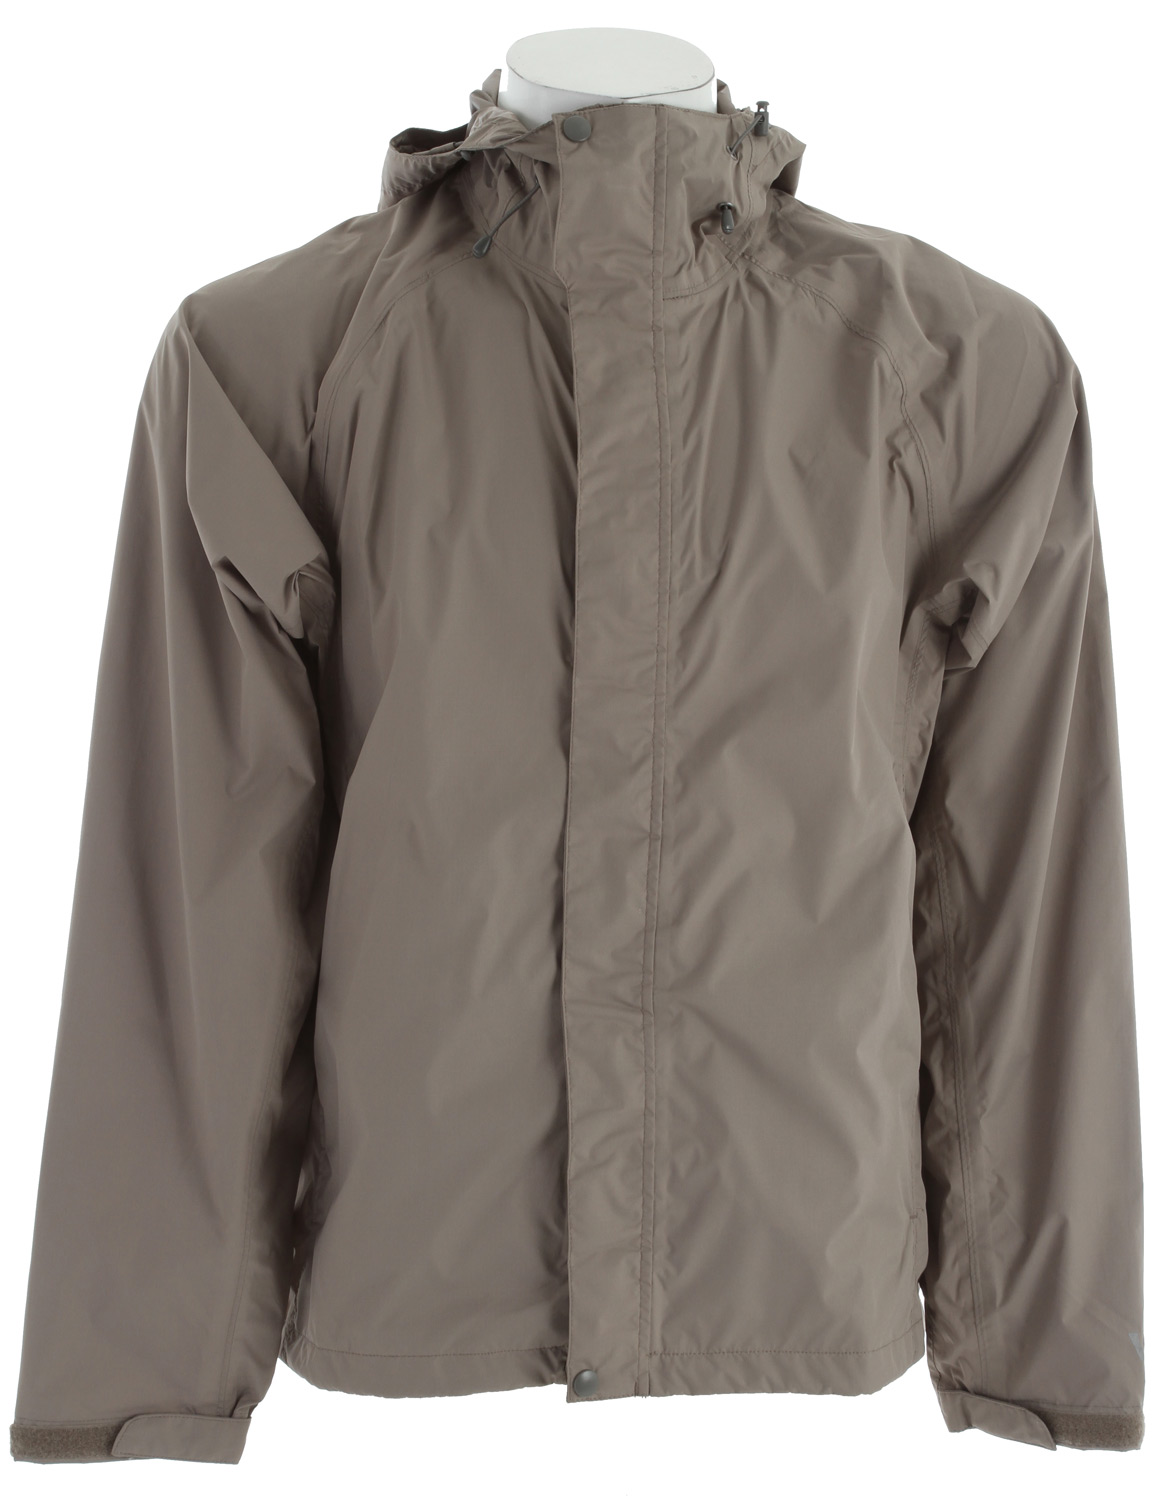 "Camp and Hike The Trabagon Jacket gives heavy waterproof protection against the elements using the lightest fabric. Throw it on between errands or hiking. You can tuck this jacket into your pack and hardly know its there.Key Features of the White Sierra Trabagon Jacket: 100% polyester tabagon micro rip stop woven Waterproof/breathable fabric Fully seam taped Teflon DWR Back yoke with mesh venting Packable - stows in front pocket One hand quick draw hem Reflective logo Center back length: 29"" - $32.95"